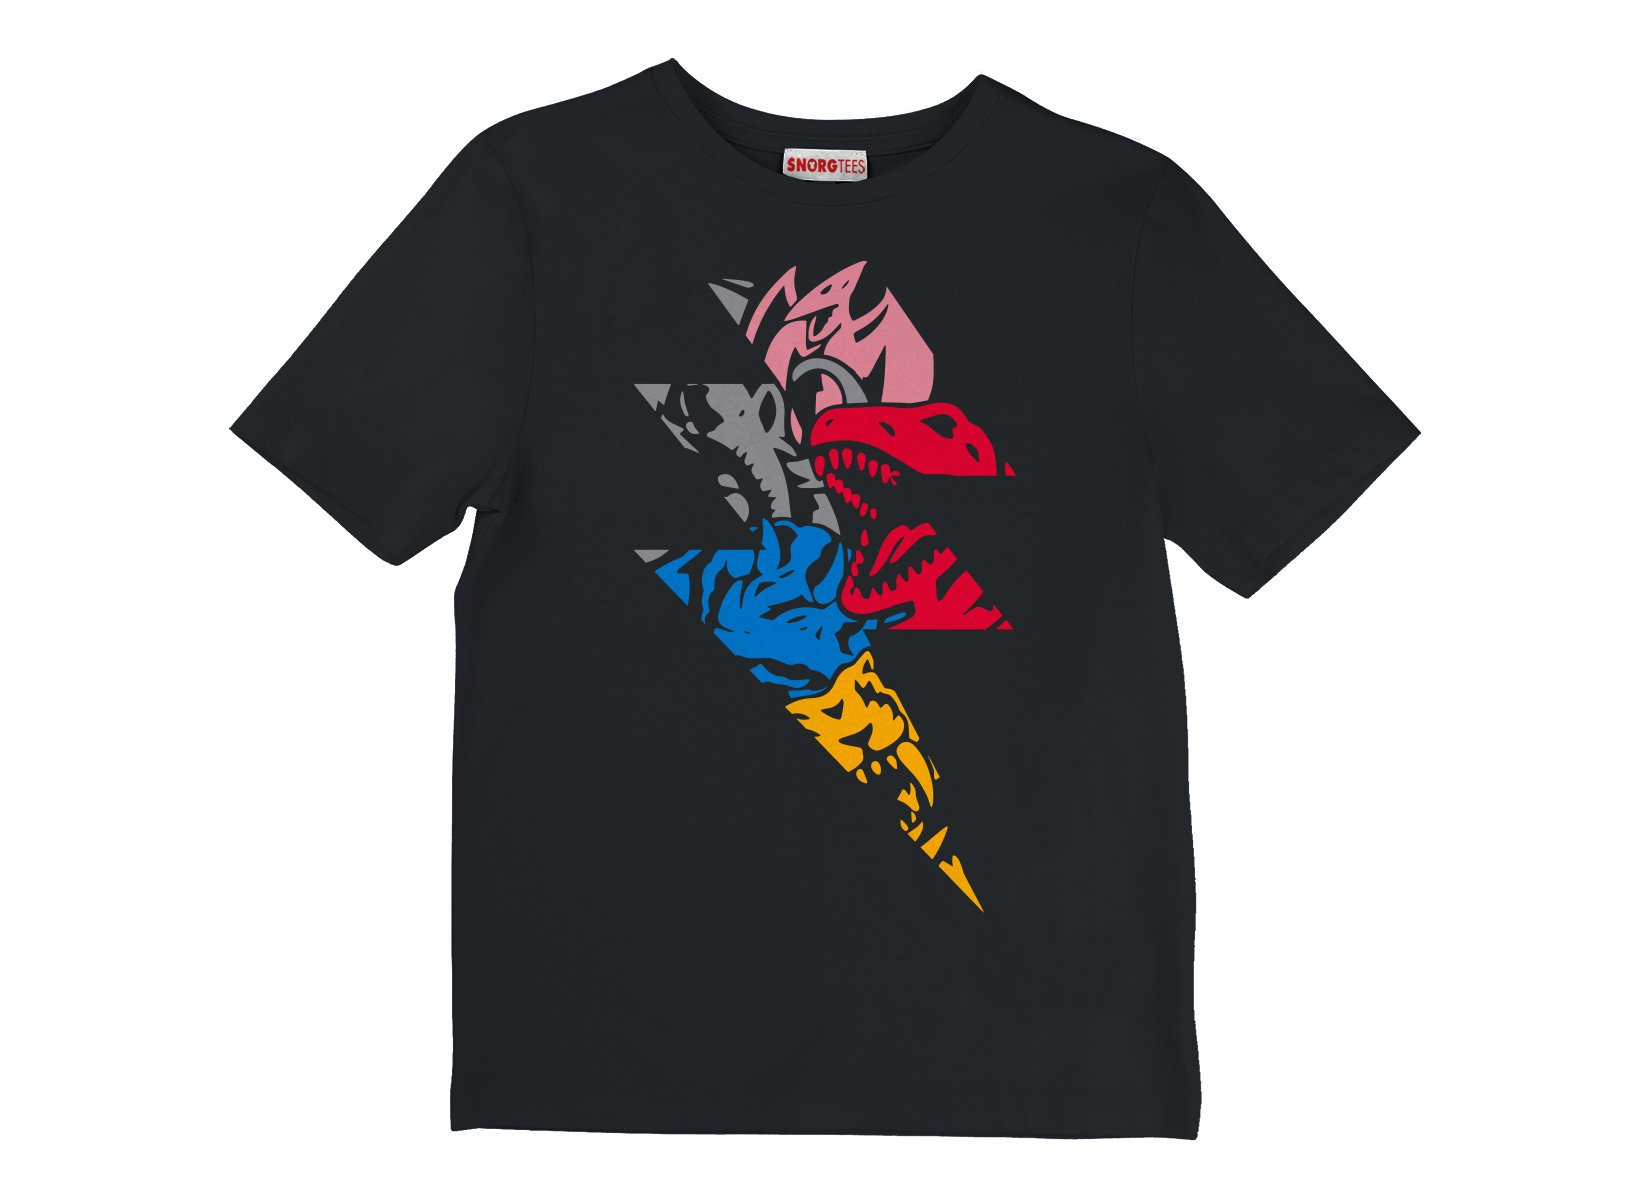 Powerzord on Kids T-Shirt